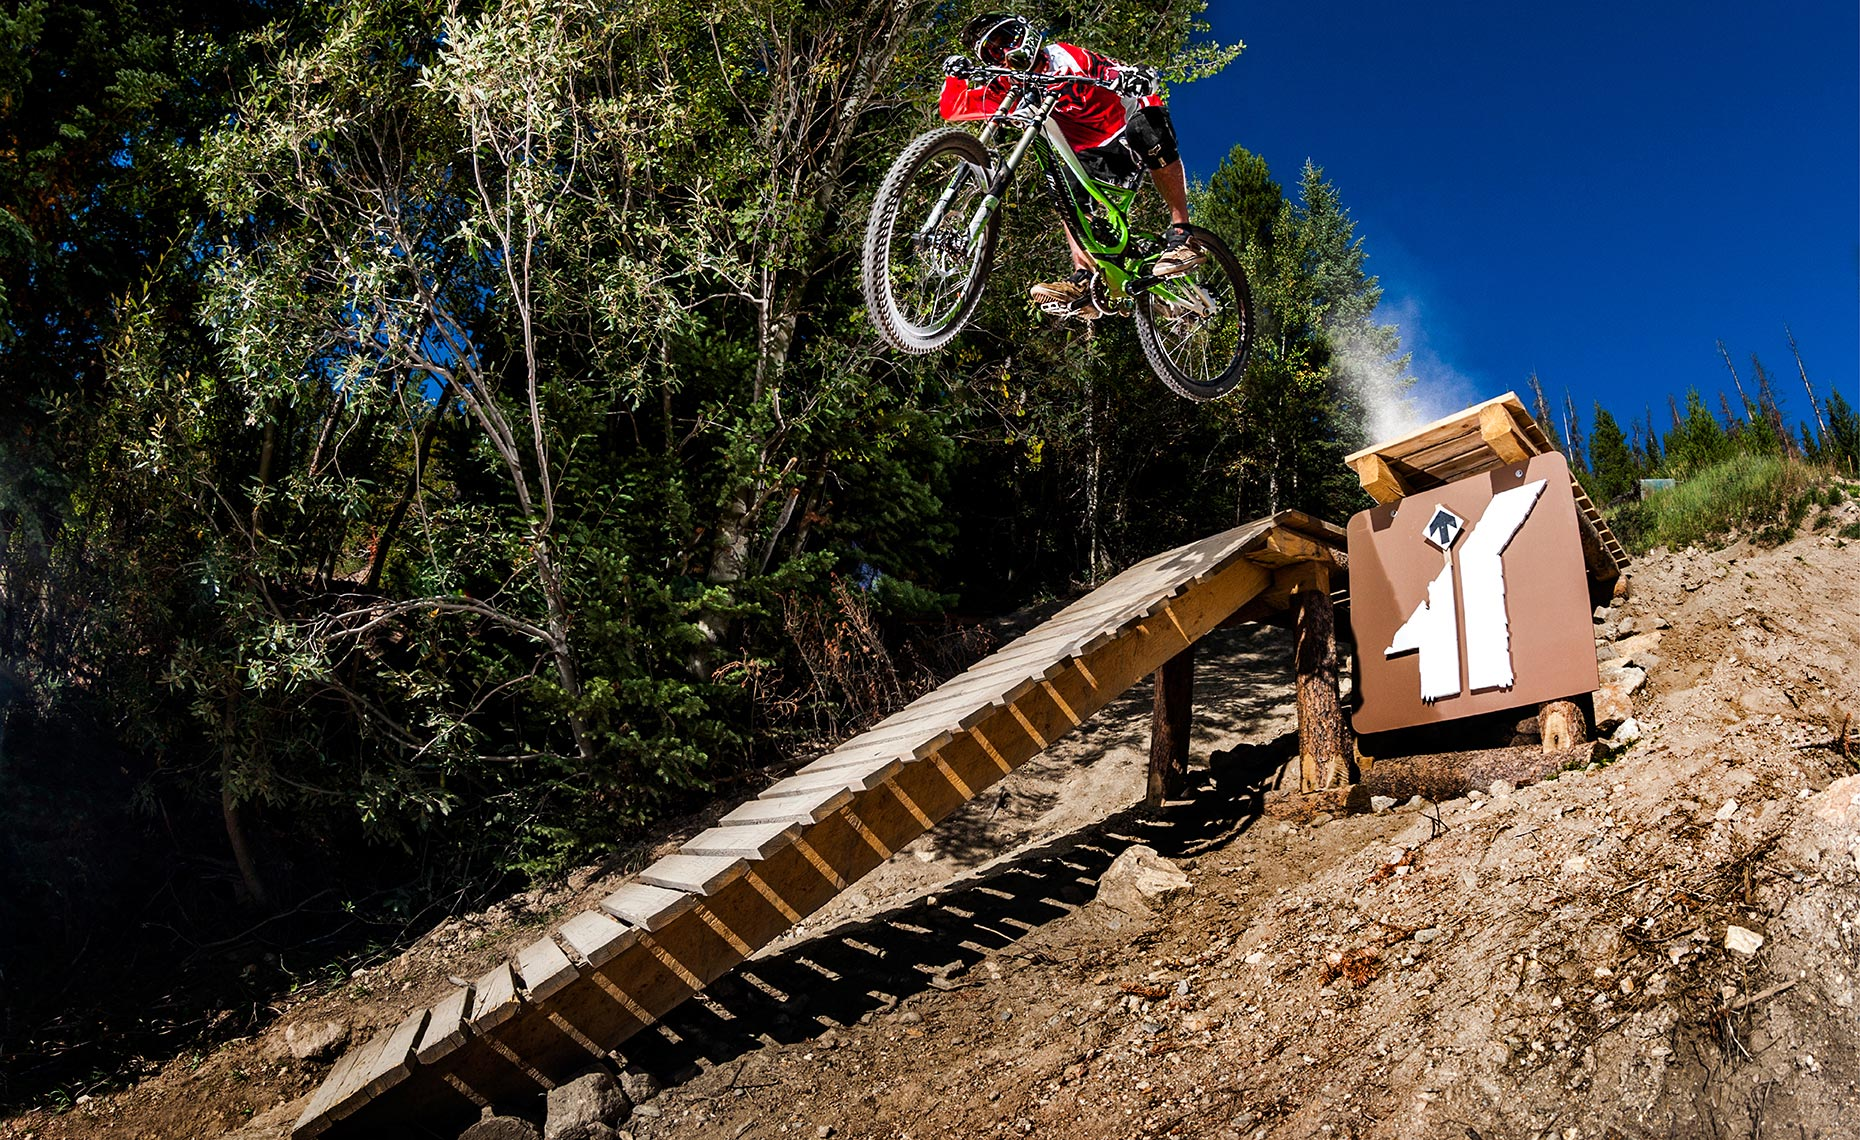 17_Andrew_McKee_Winter_Park_Colorado_Trestle_Bike_Mountain_Biking_Chris_Wellhausen_Photography.JPG